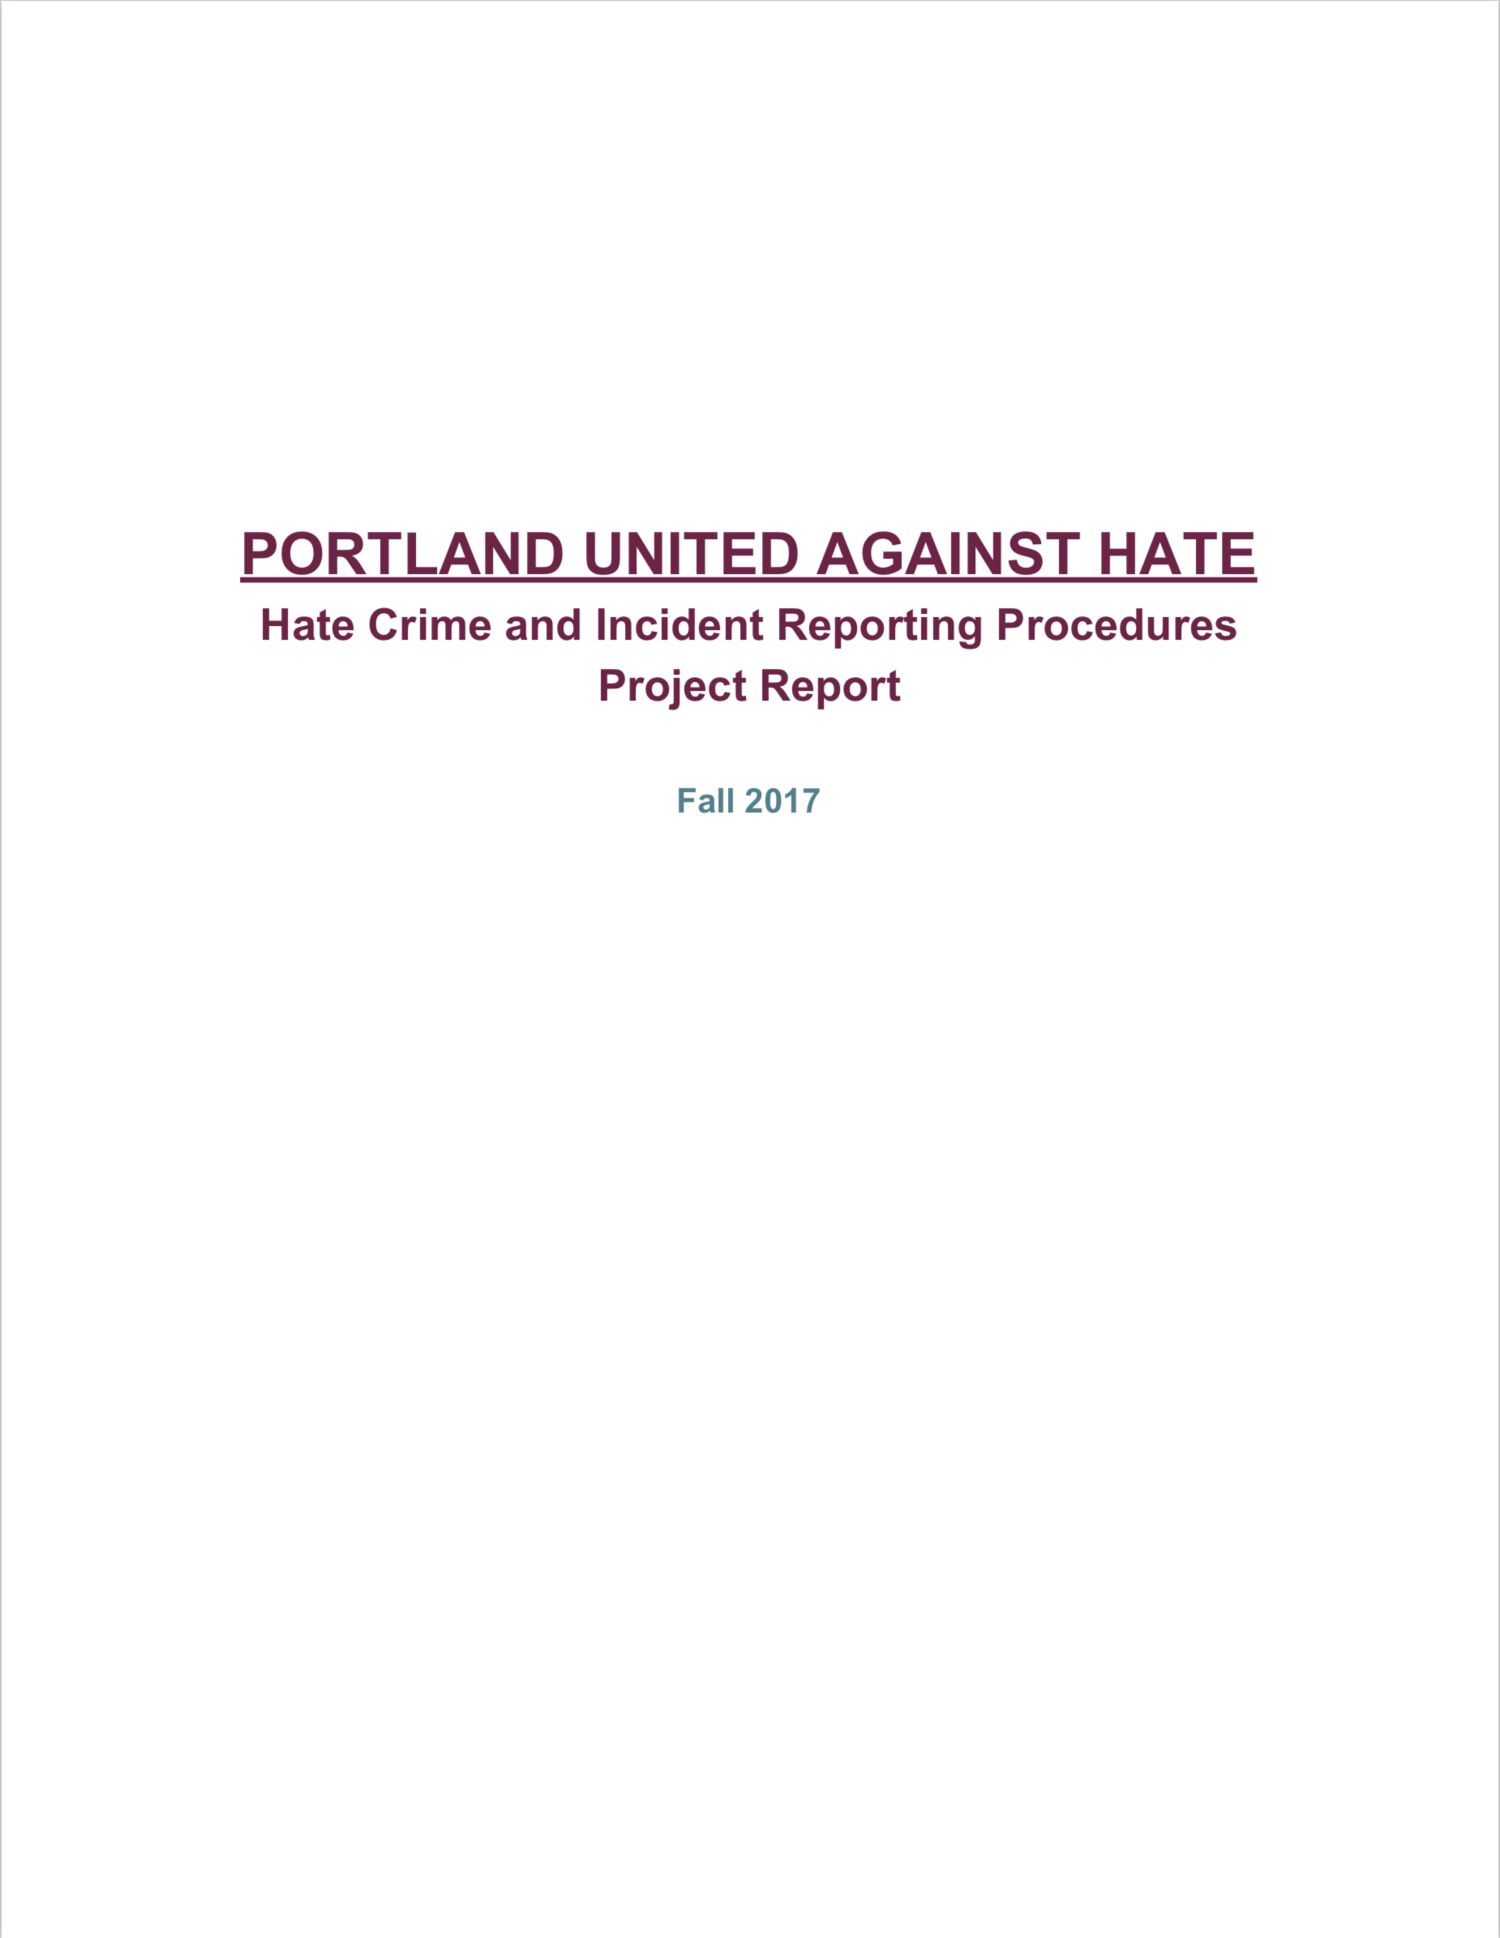 Portland United Against Hate: Hate Crime and Incident Reporting